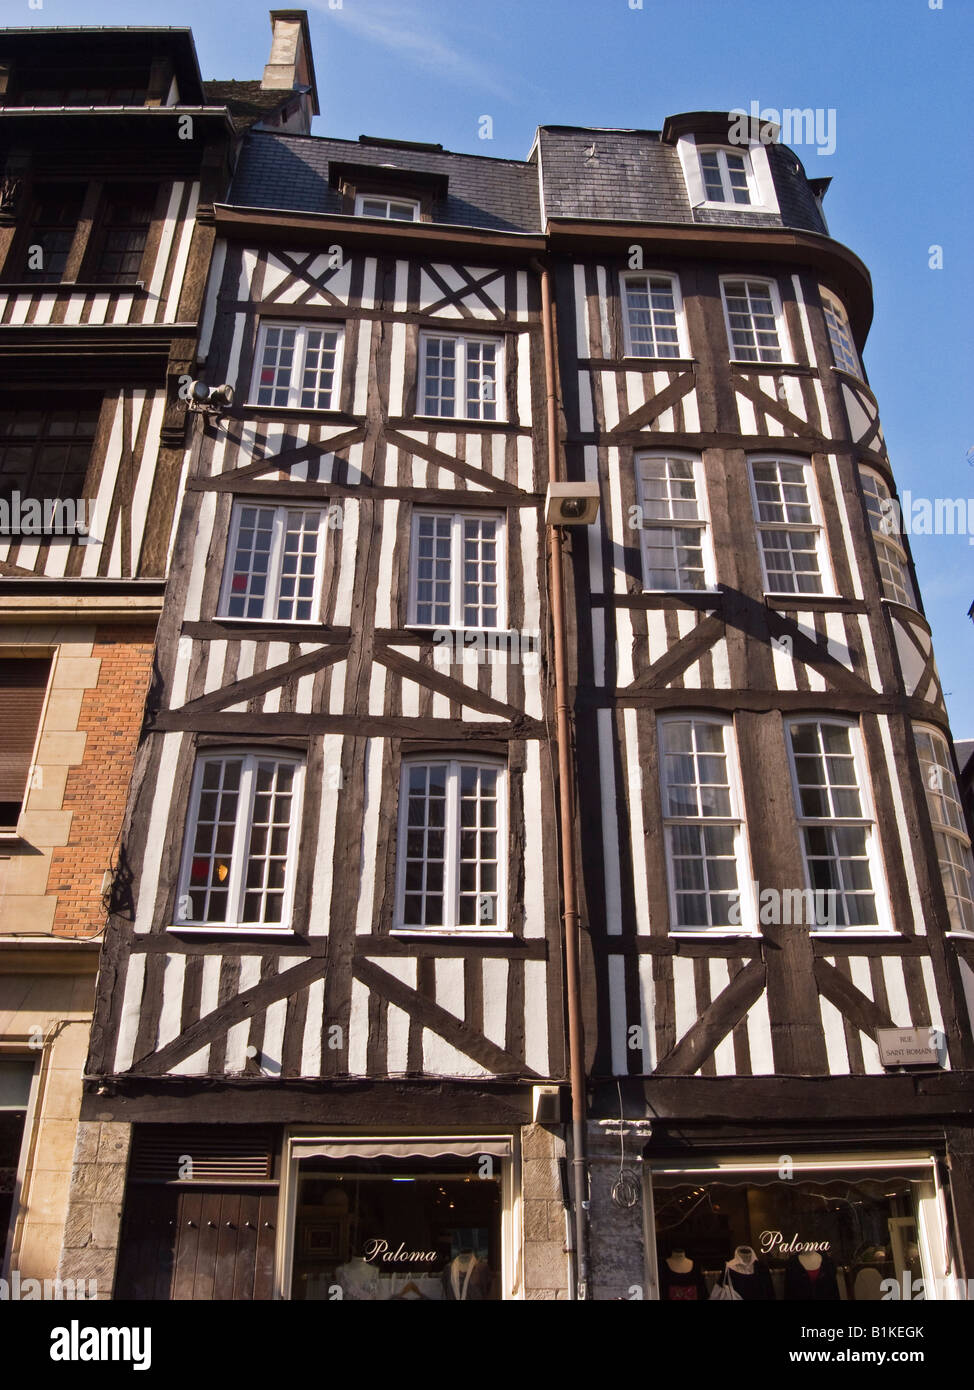 Half timbered old building in Rue Saint Romain in Rouen Normandy France EU - Stock Image